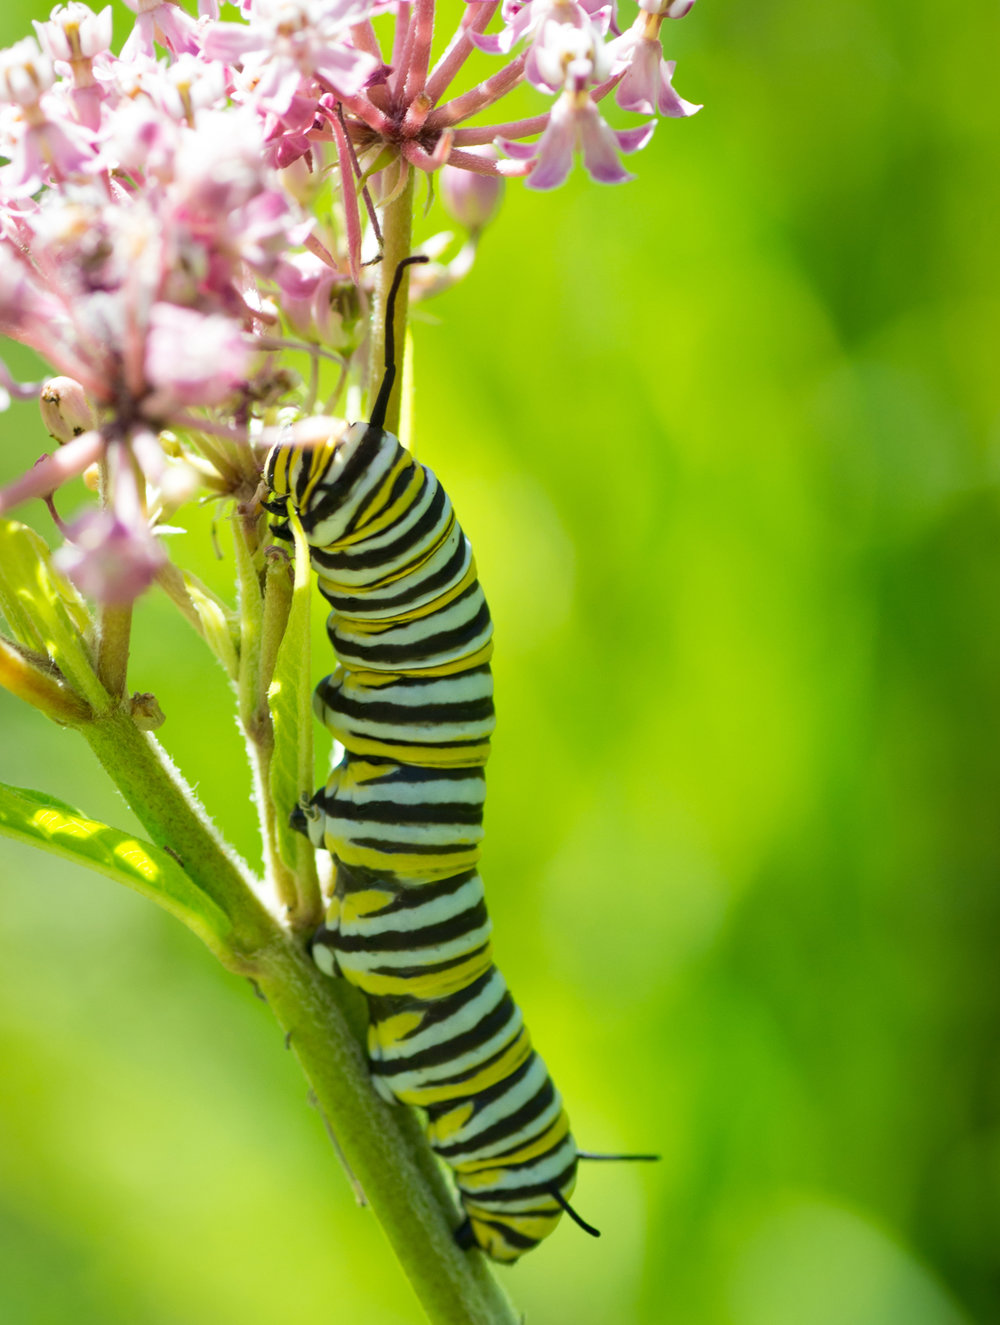 Monarch caterpillars eat only milkweed. Photo by Andrew C/Creative Commons